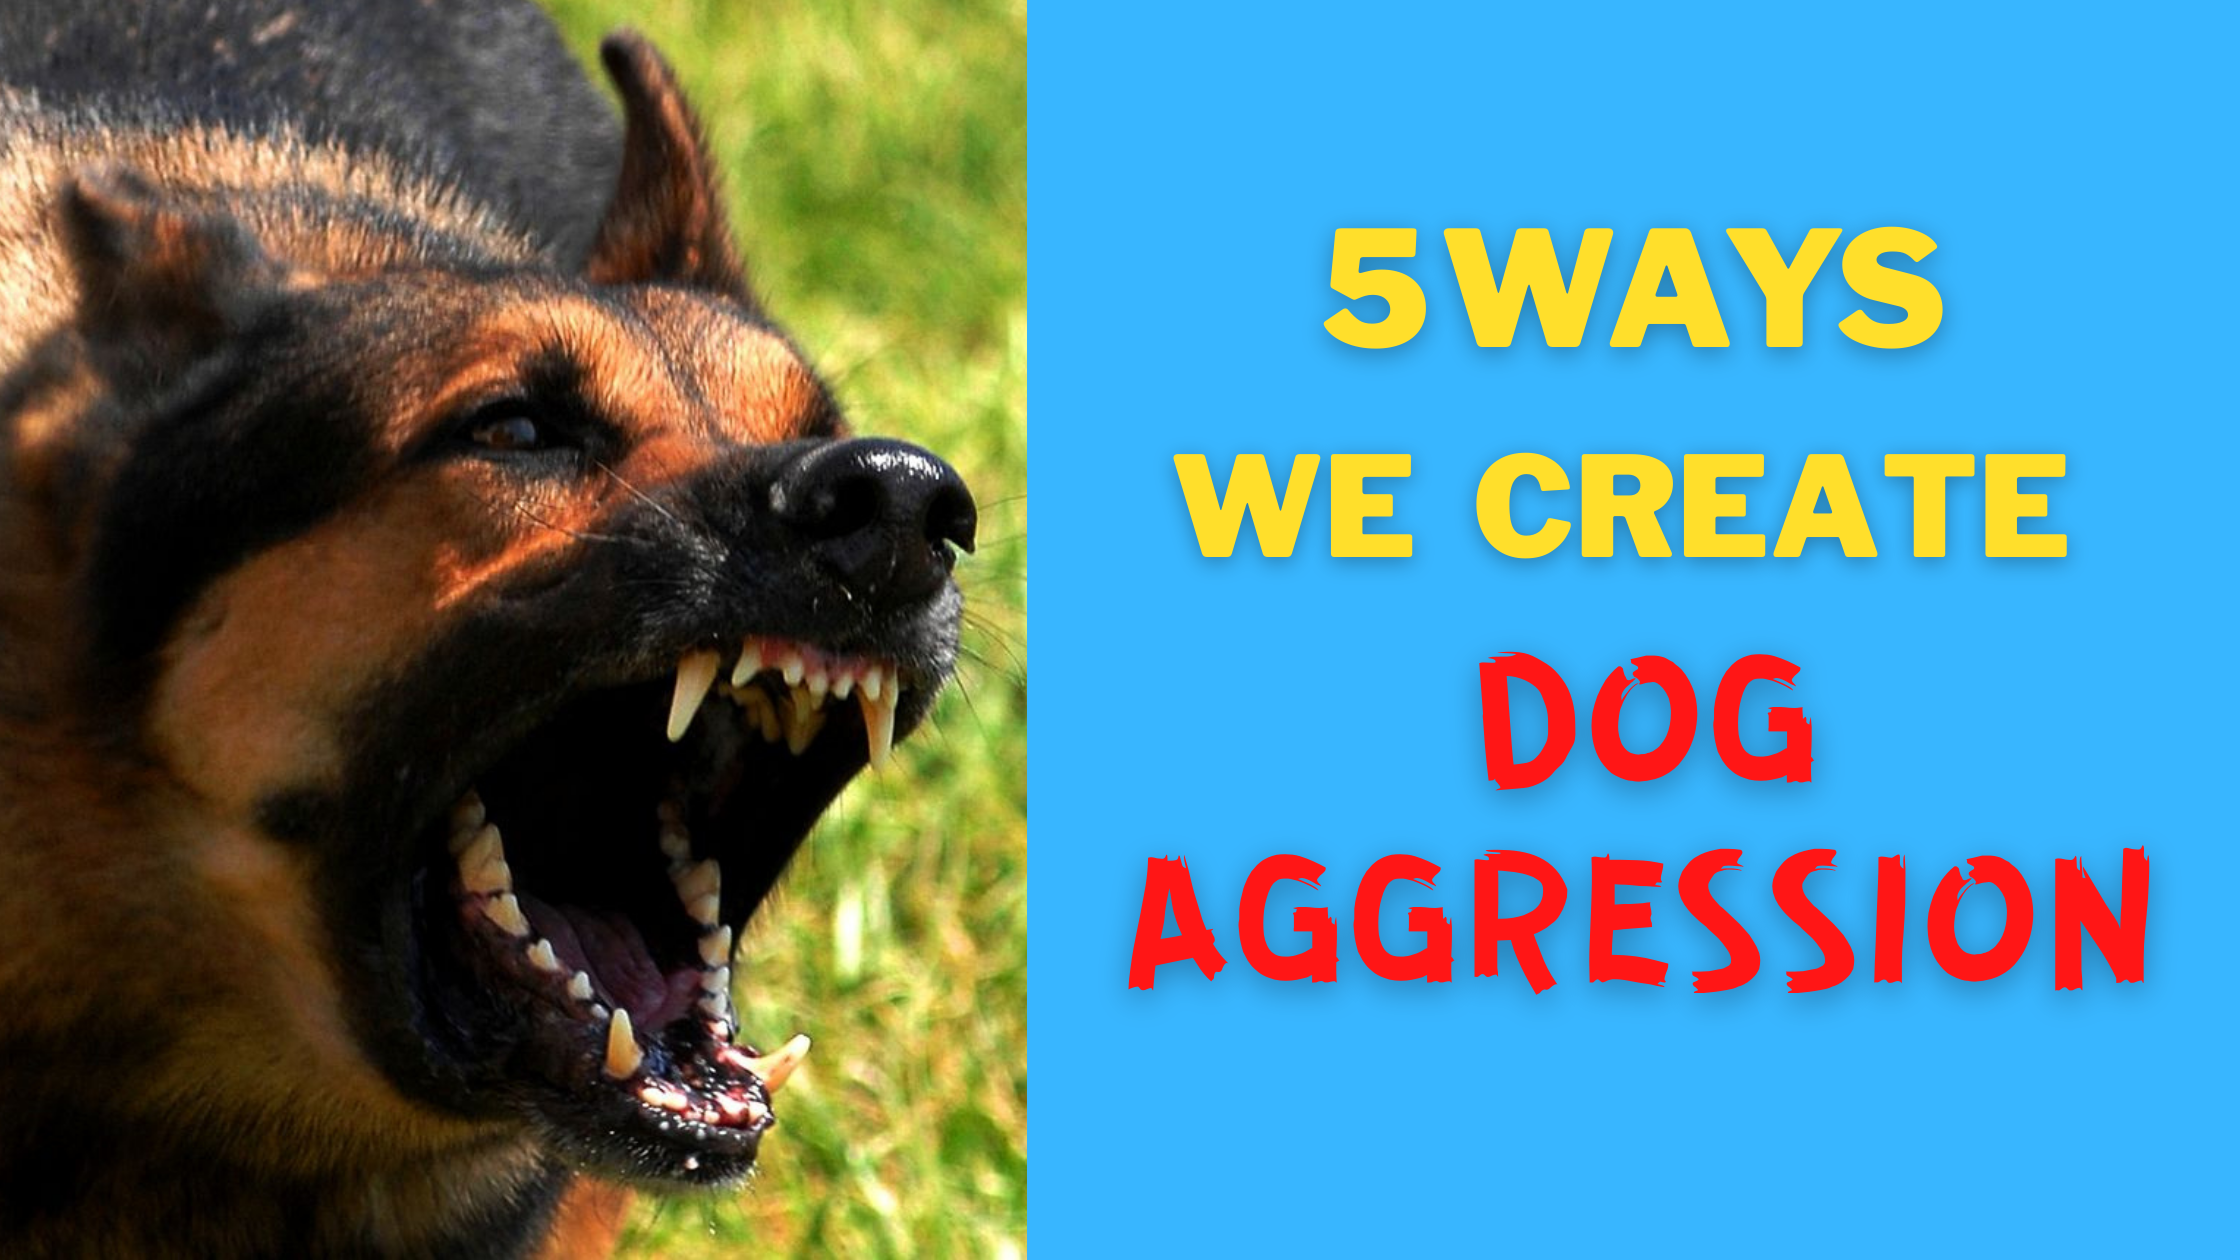 5 Ways We Create Dog Aggression